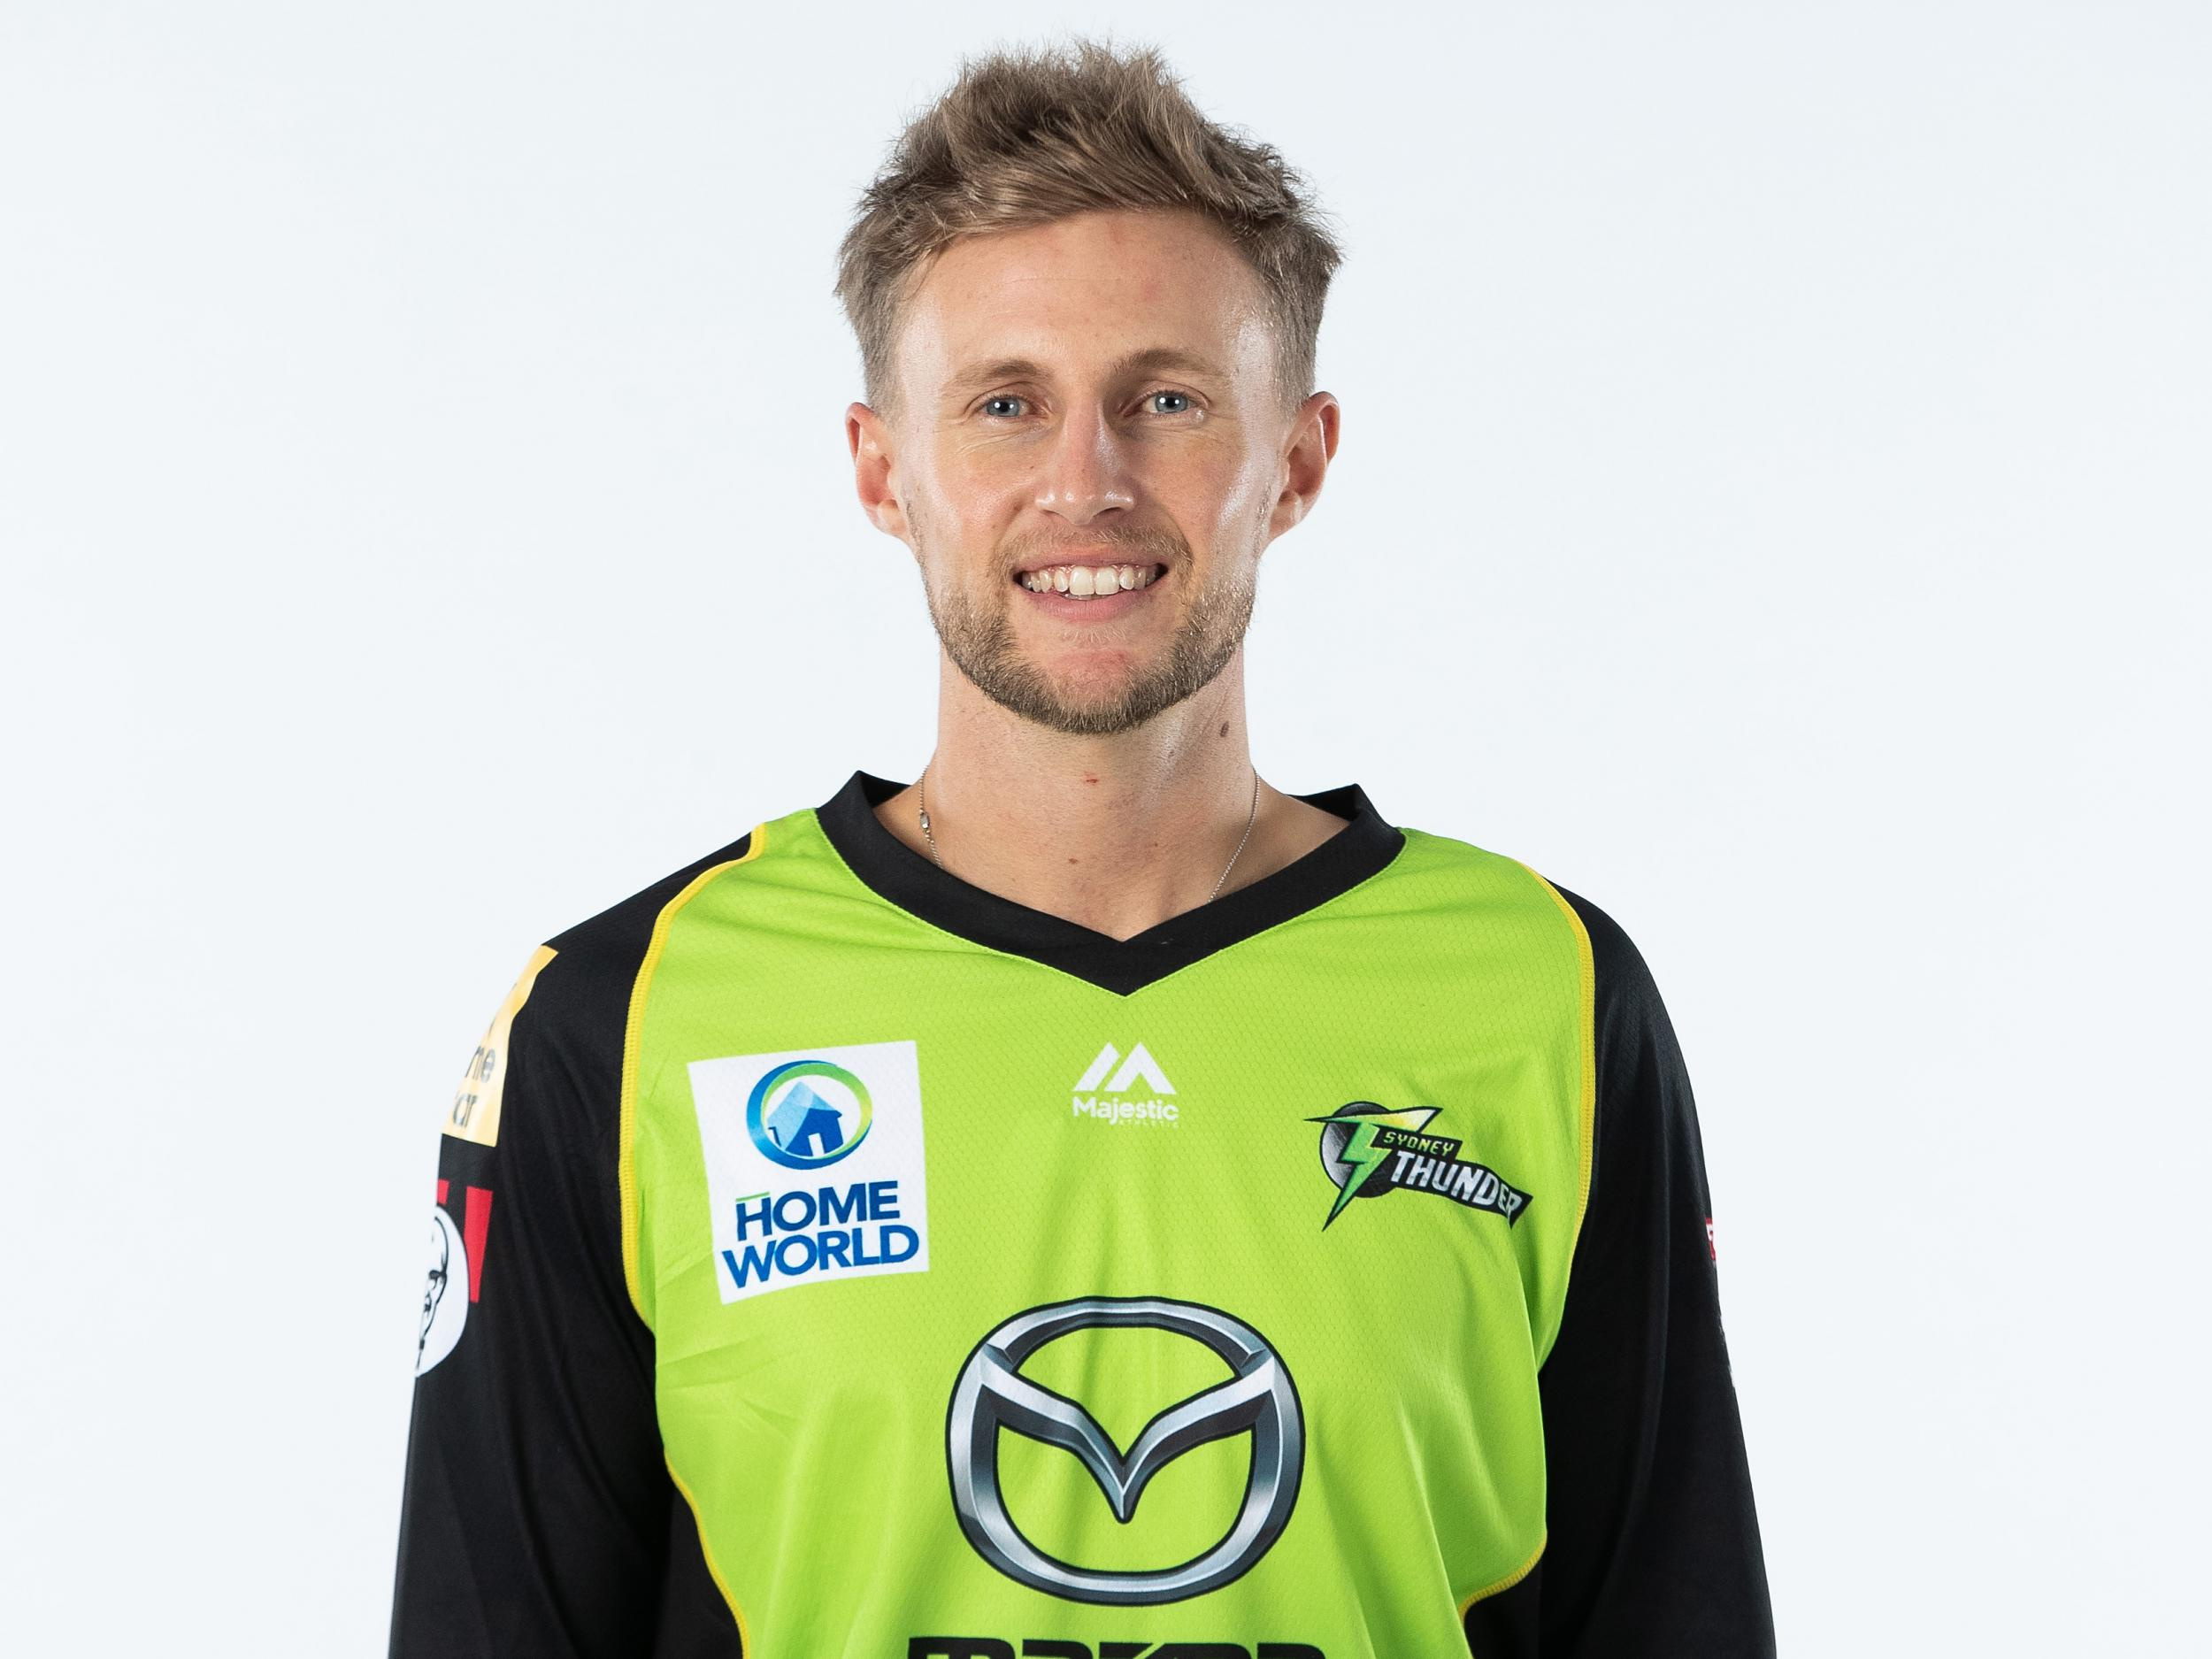 Big Bash League - latest news, breaking stories and comment